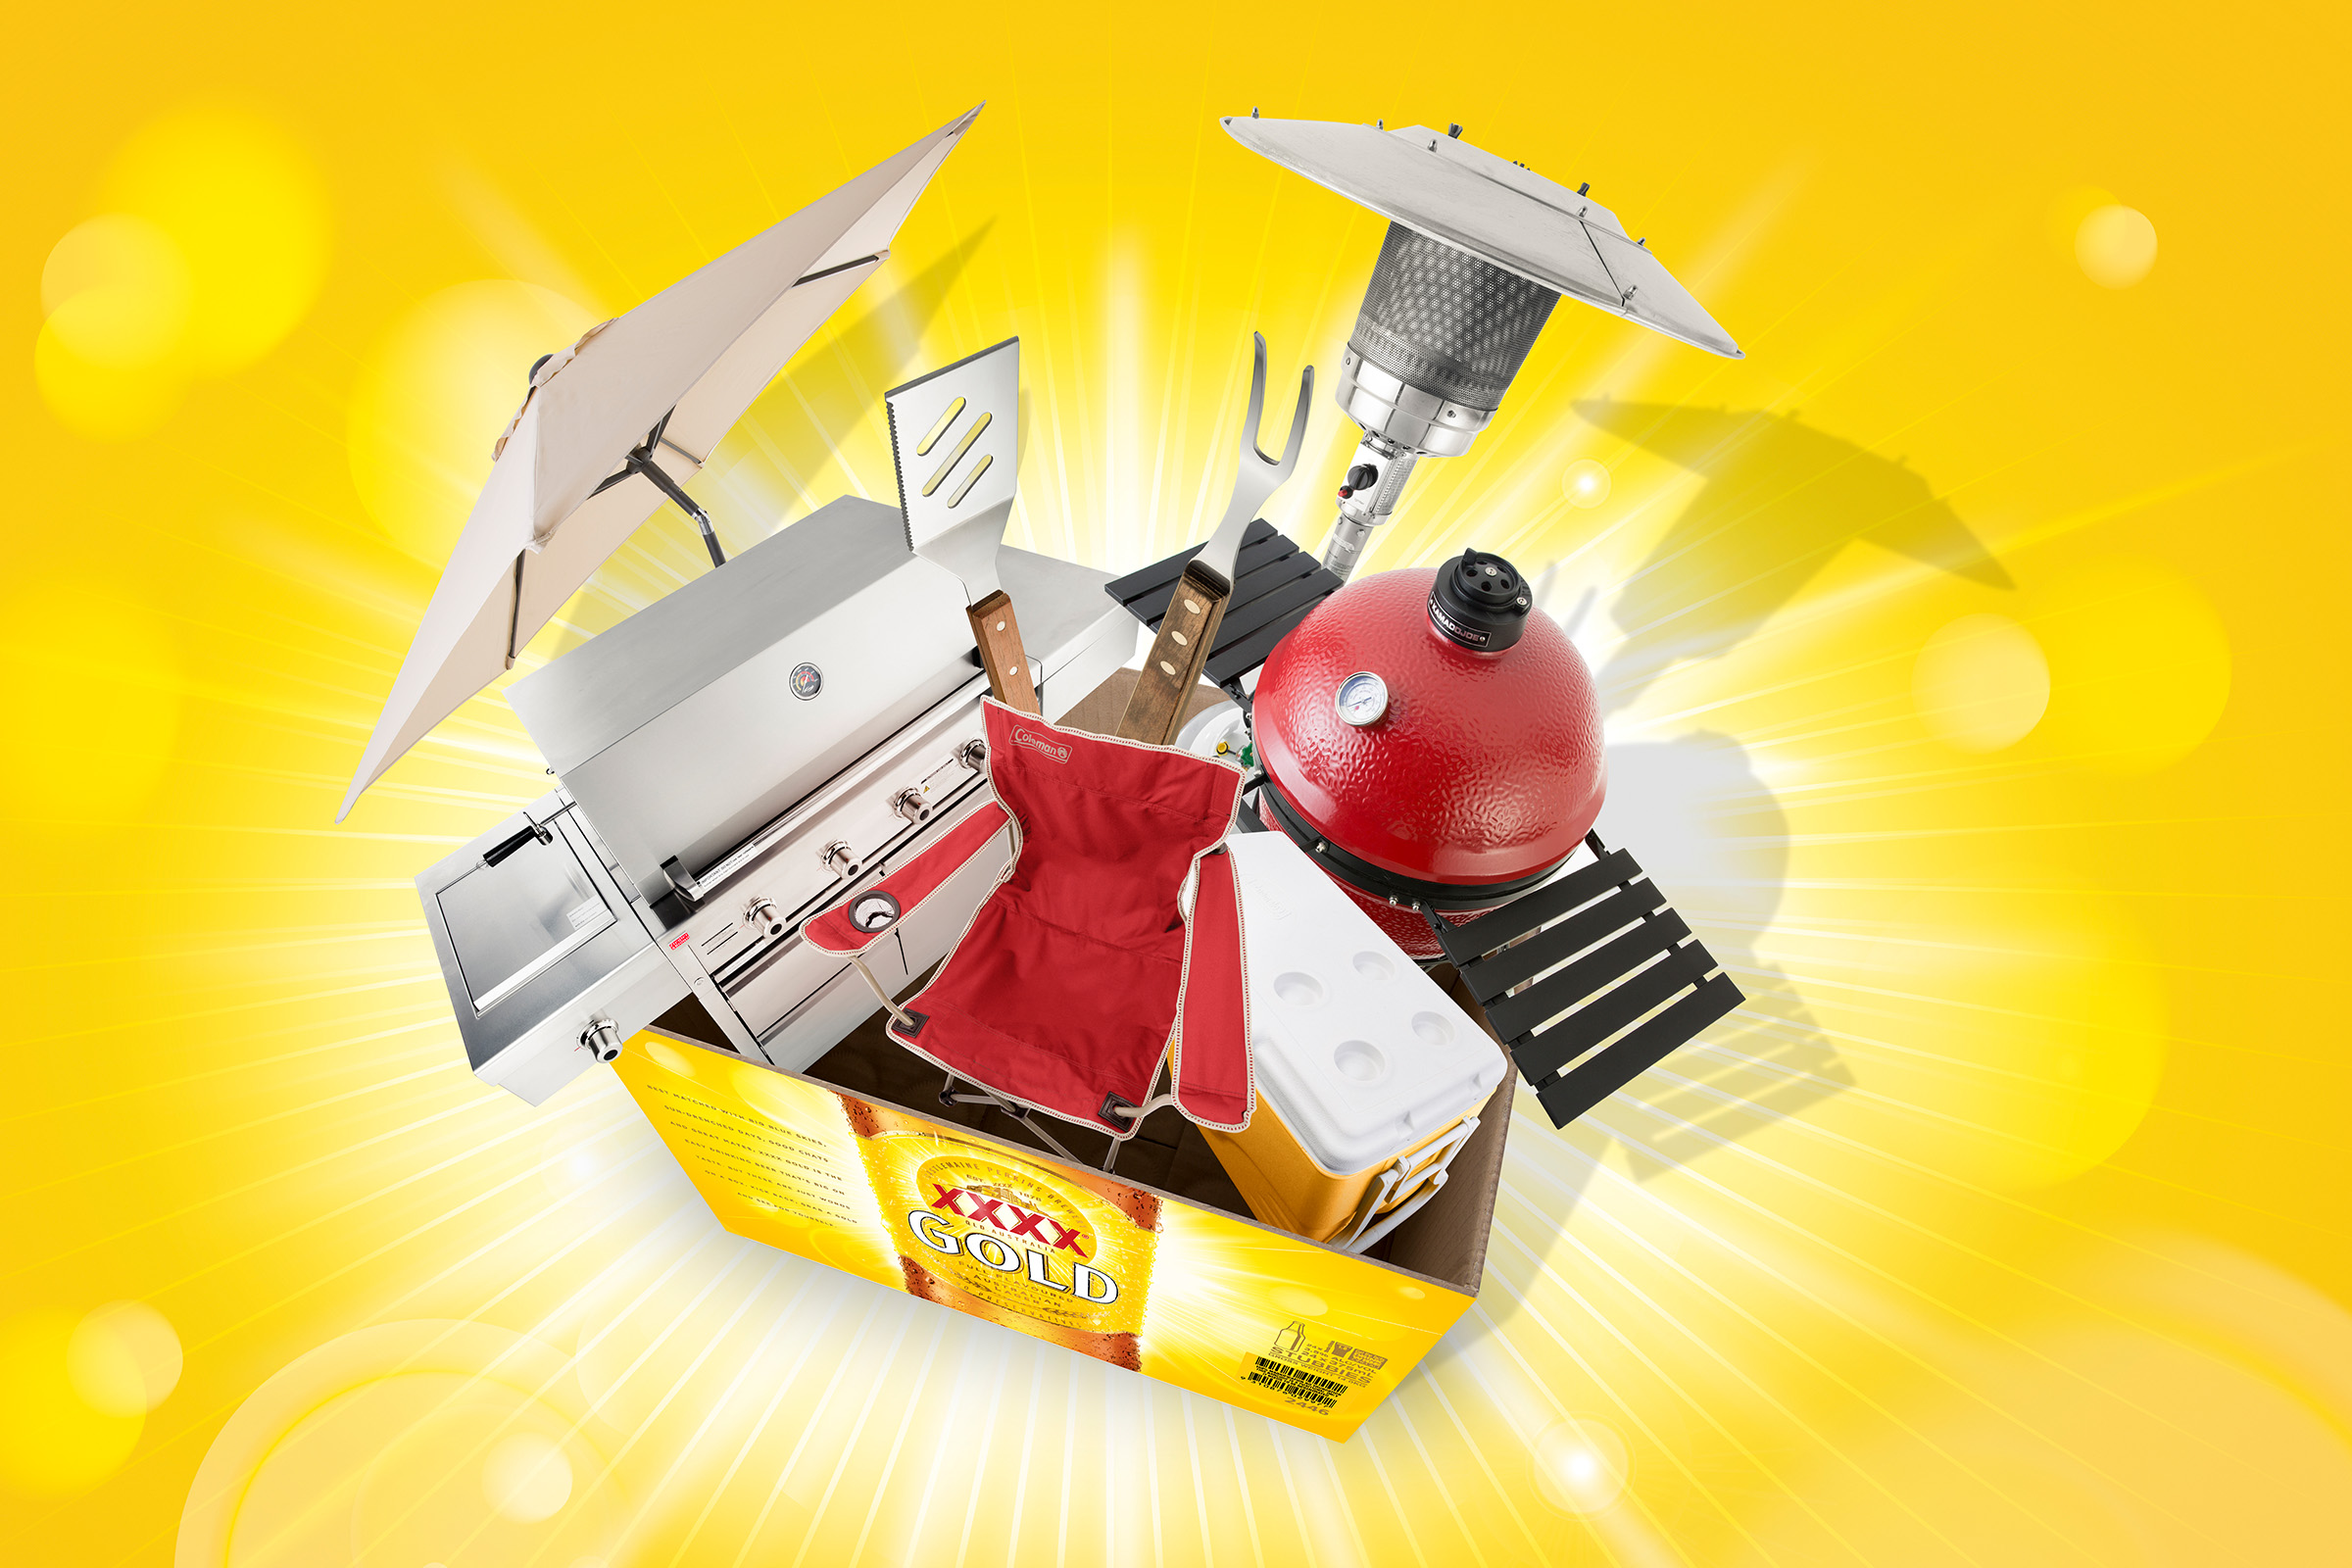 XXXX advertising photography of beer and barbecue prize pack bbq, chairs, outdoor heaters, bbq tools, esky, bursting out of xxxx case of beer